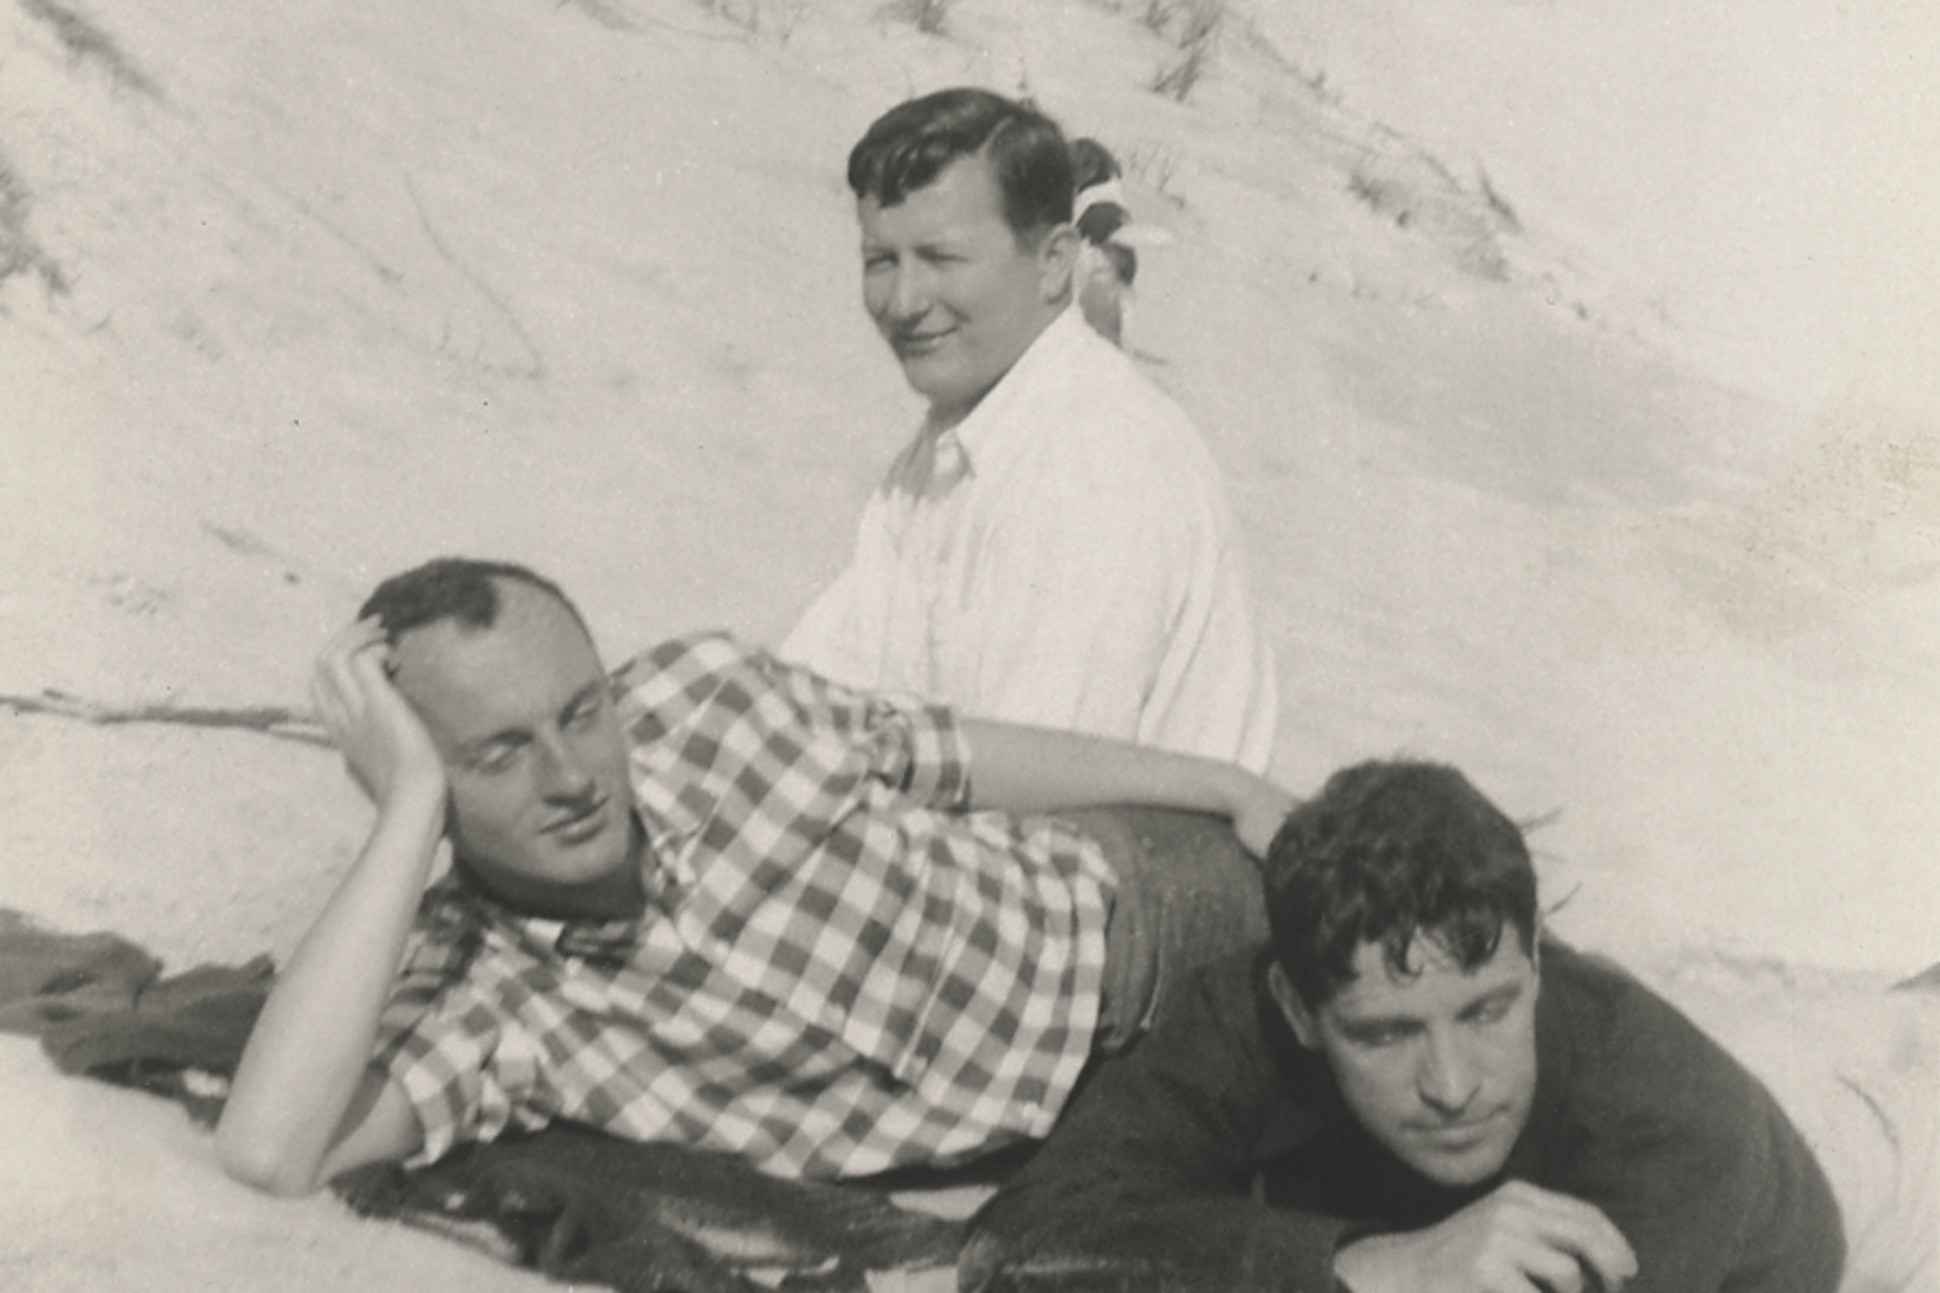 Frank O'Hara, Hal Fondren and Fairfield Porter in Southampton in spring 1954